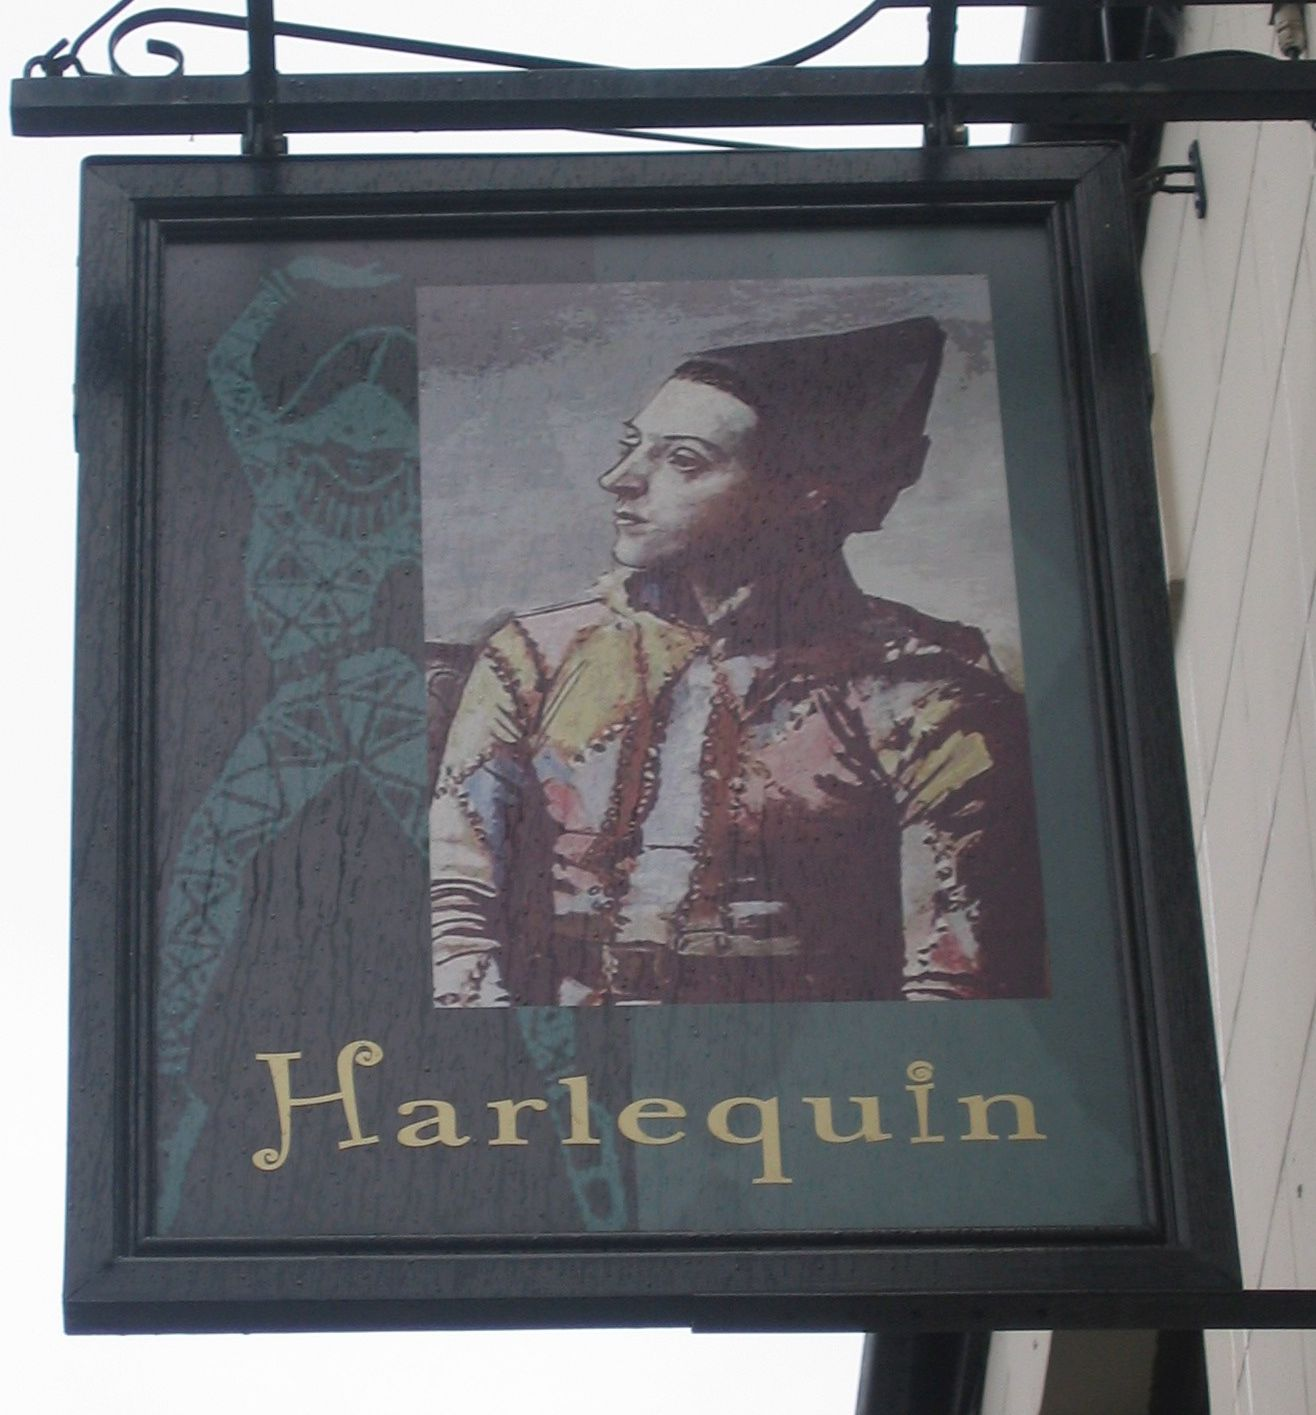 Pub Sign photo taken by me - The Harlequin Chadderton Manchester